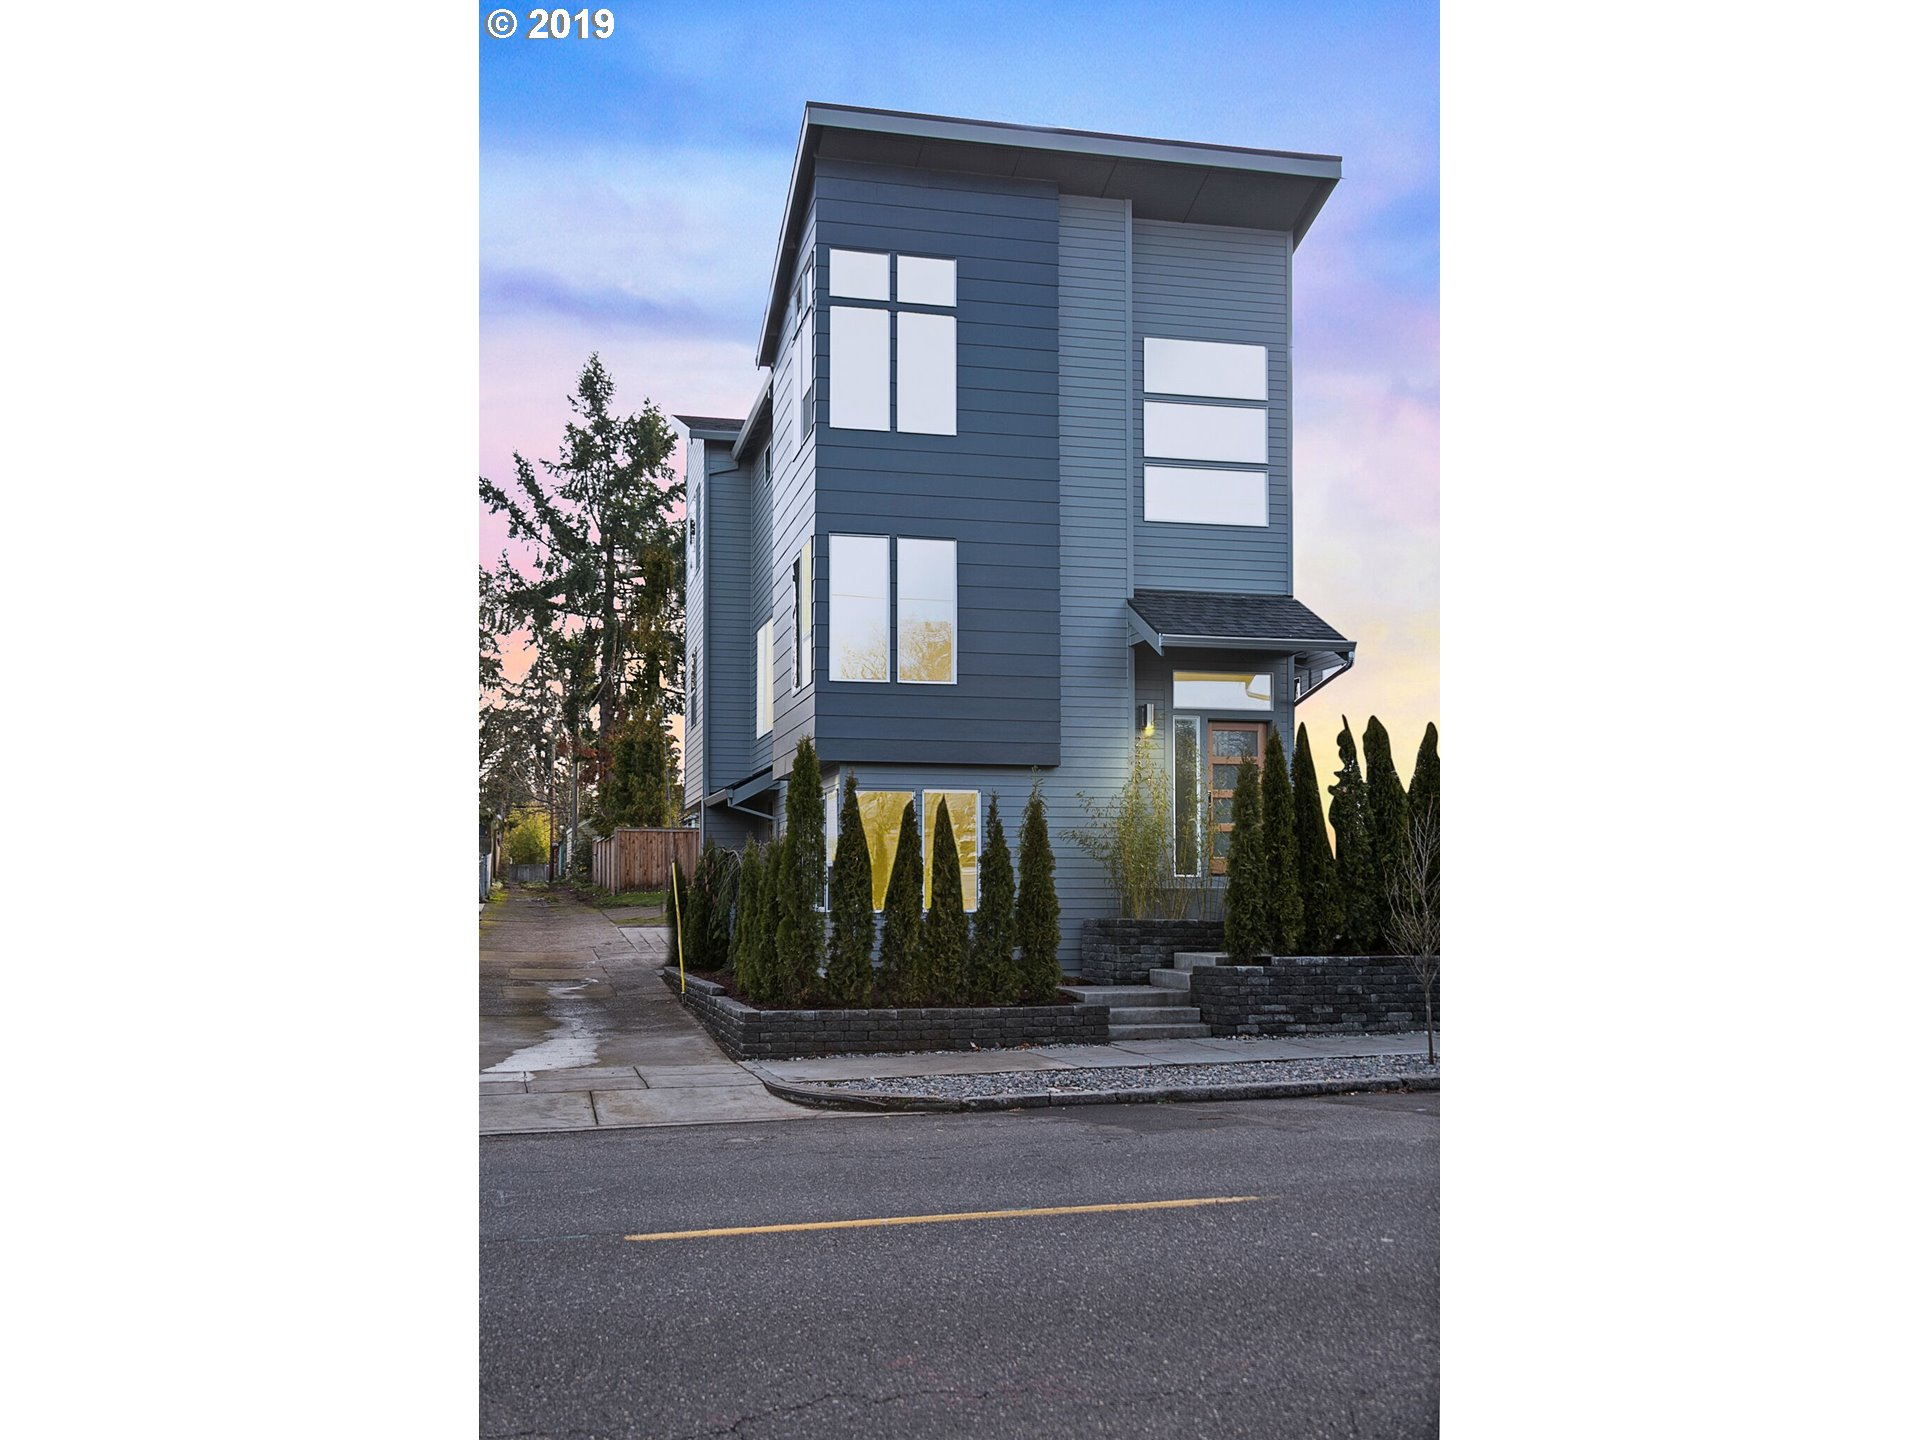 Photo for 2430 NE KILLINGSWORTH ST, Portland, OR 97211 (MLS # 19350618)